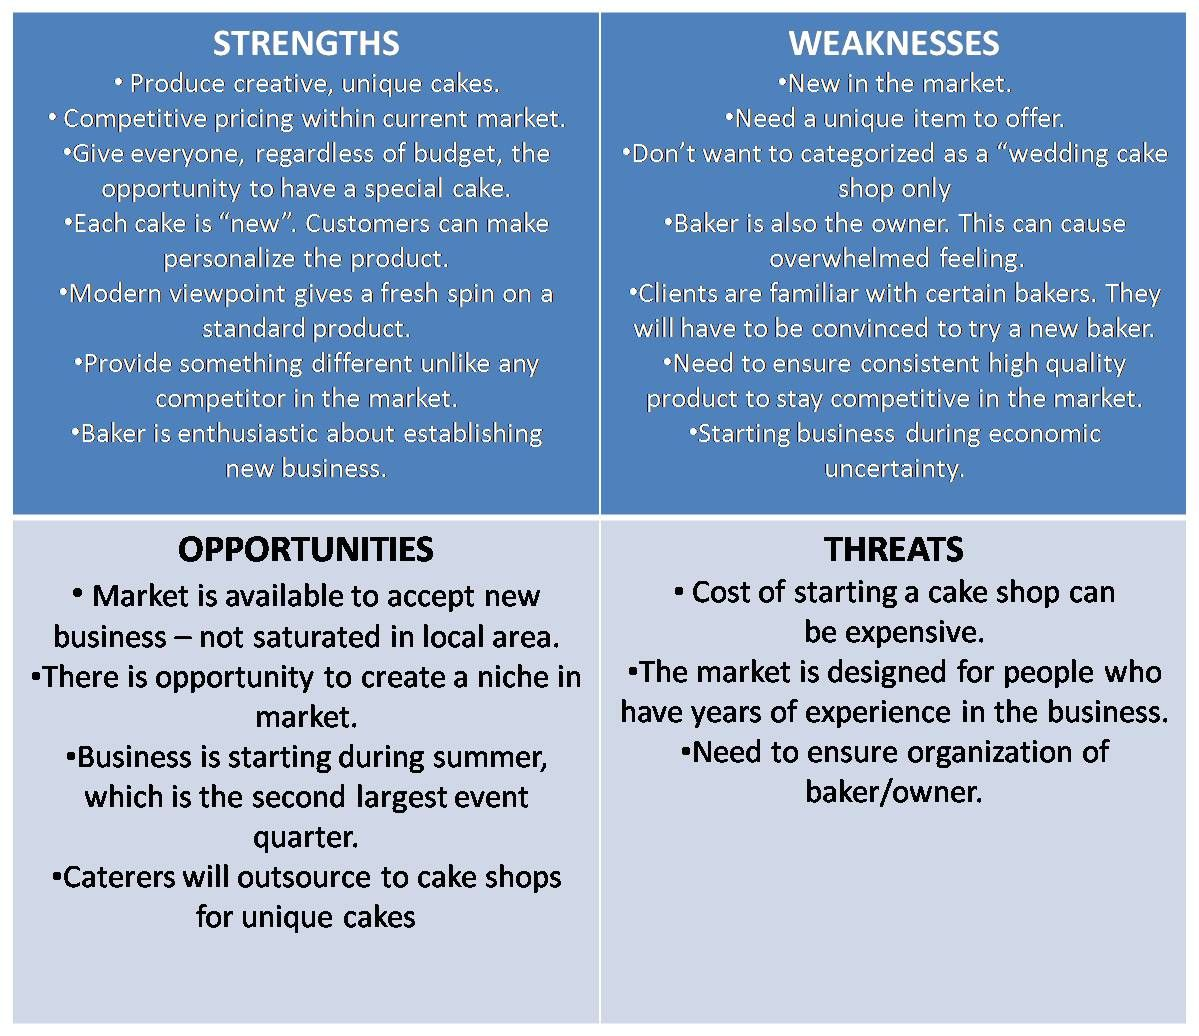 selfridges swot analysis Taking what i learned from my analysis of the two organizations i had personal experience with, and my interviews from professionals working in the industry, i identified the major similarities and differences in the two business models.